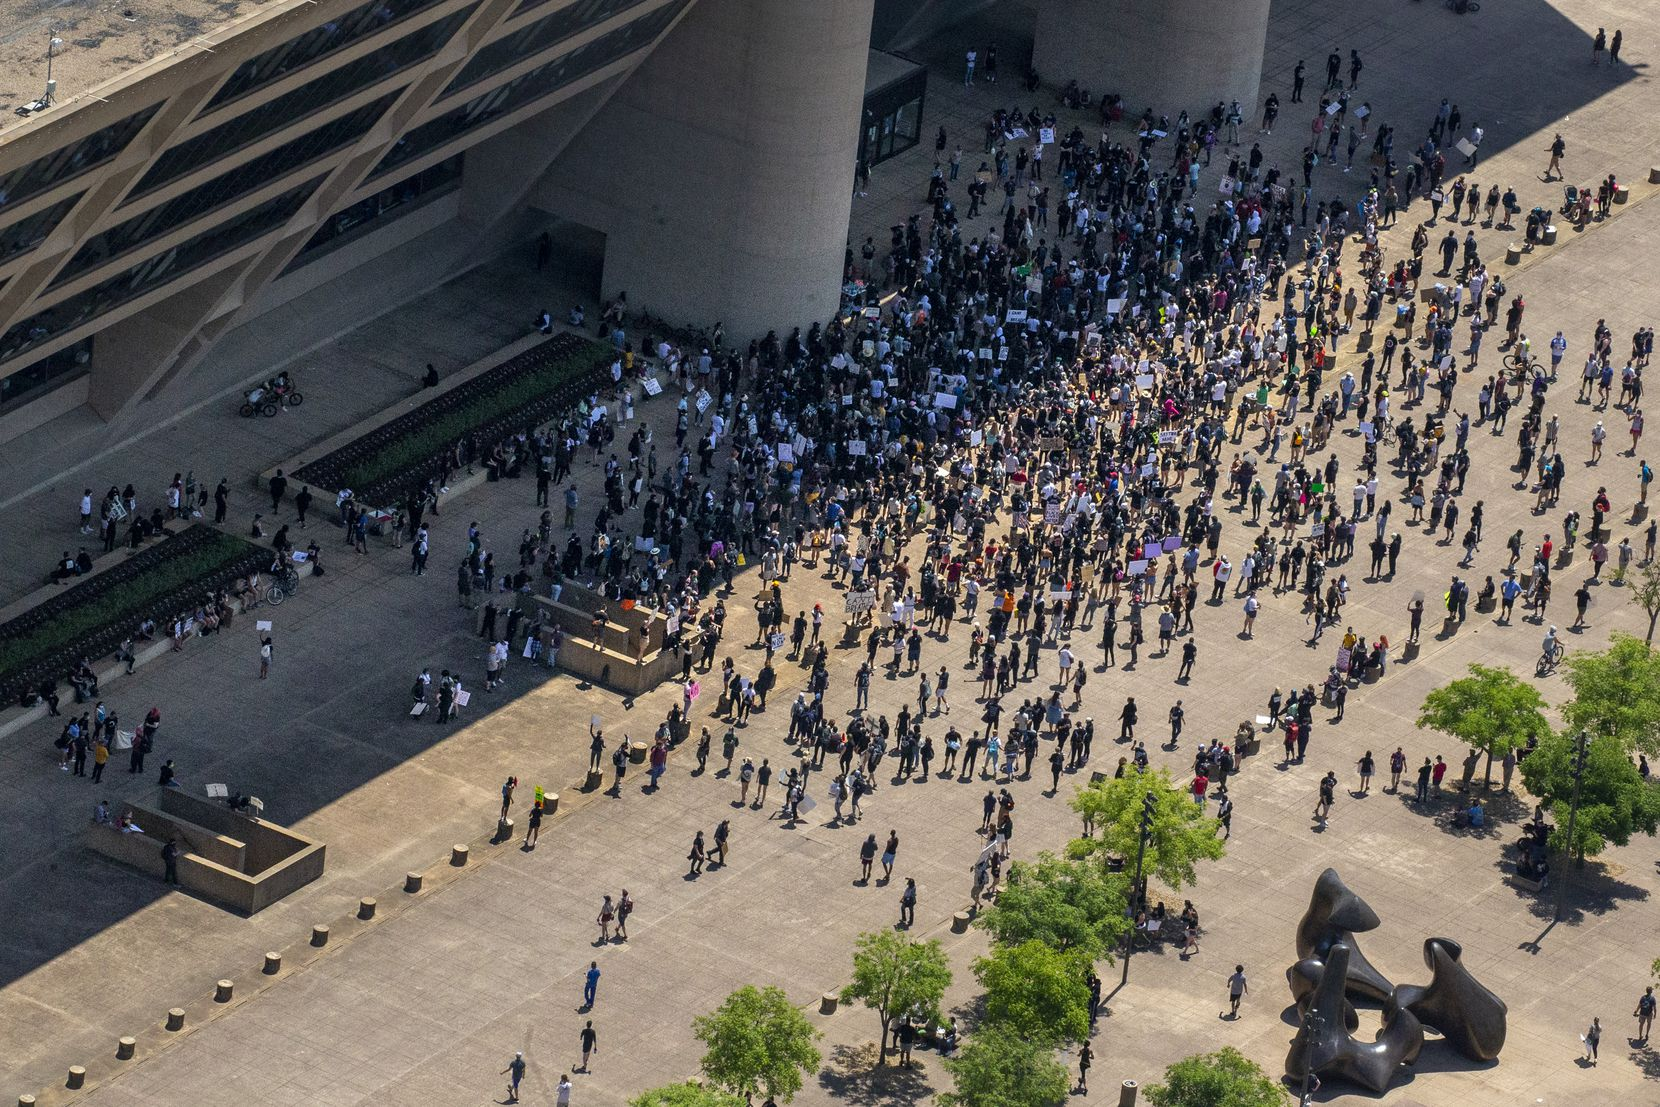 After marching throughout downtown Dallas, protesters march back to Dallas City Hall during a demonstration denouncing police brutality in Dallas on Saturday, May 30.